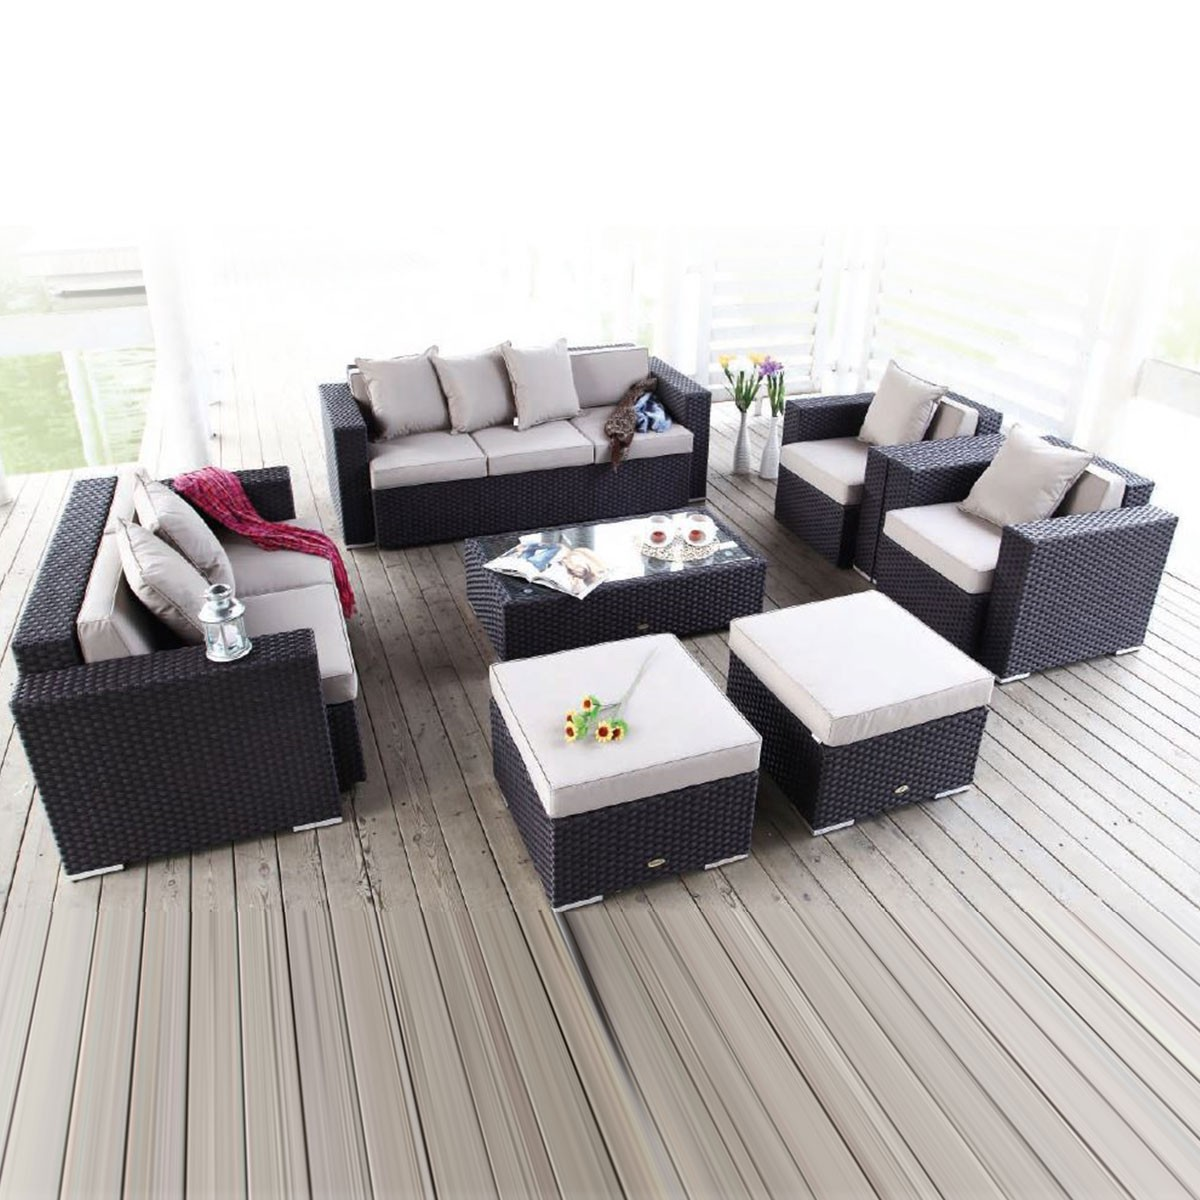 Rattan Sofa 7 Piece Pe Rattan Sofa Set 2 Lounge Chairs 1 Loveseat 1 Three Seater Sofa 1 Coffee Table 2 Ottomans Lls 231